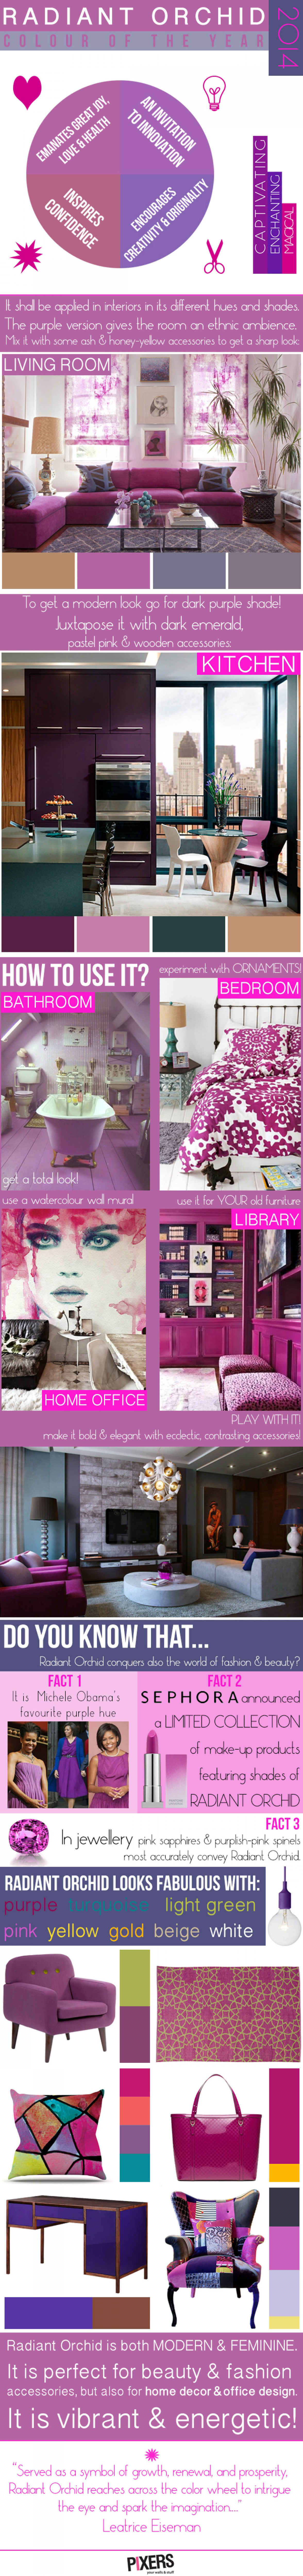 11 the-ultimate-guide-to-radiant-orchid_5303530cb246c_w1500